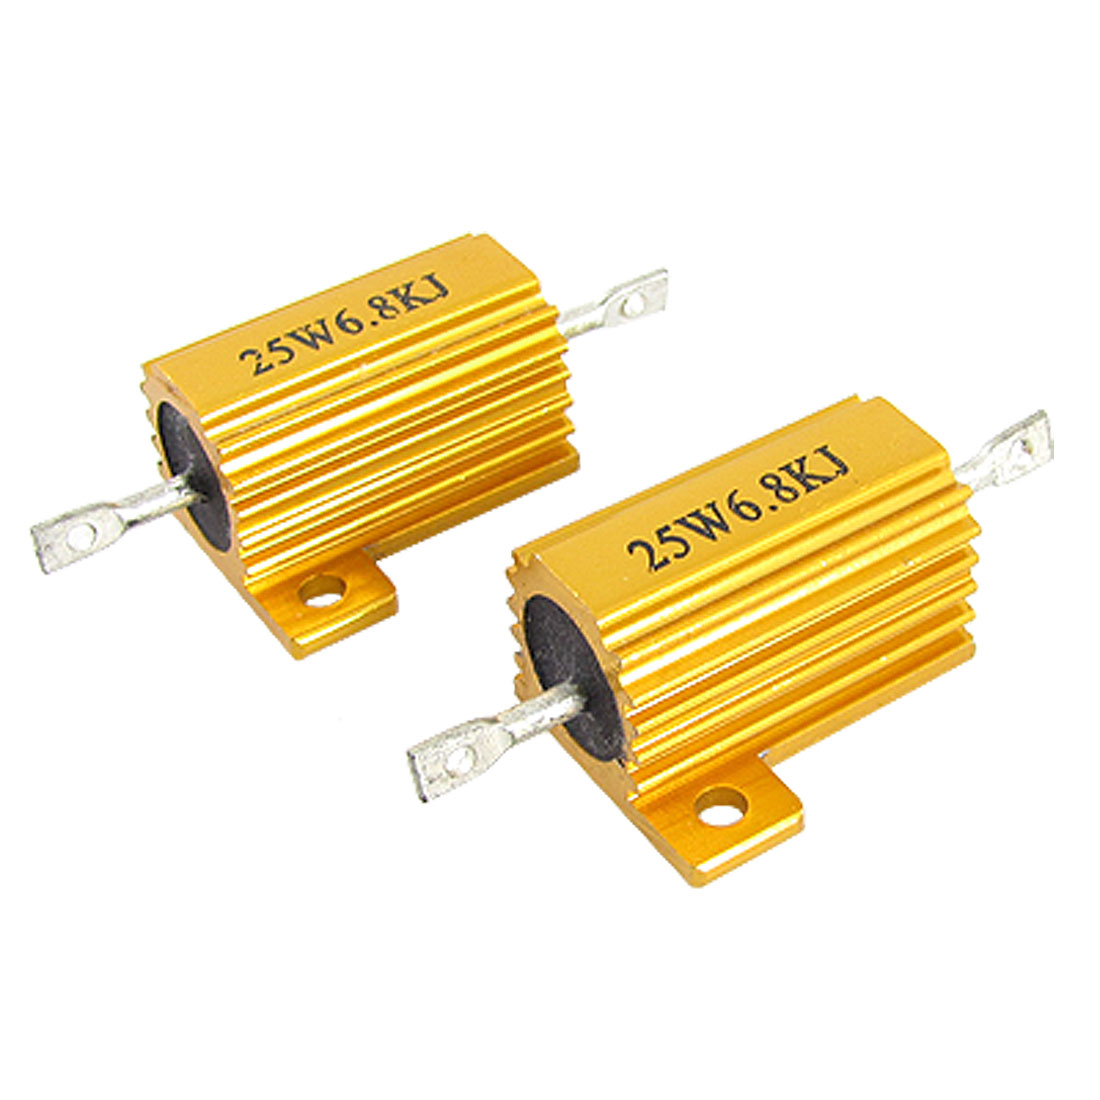 Gold Tone 25W 6.8K Ohm 5% Aluminum Housed Wirewound Resistors 2 Pcs